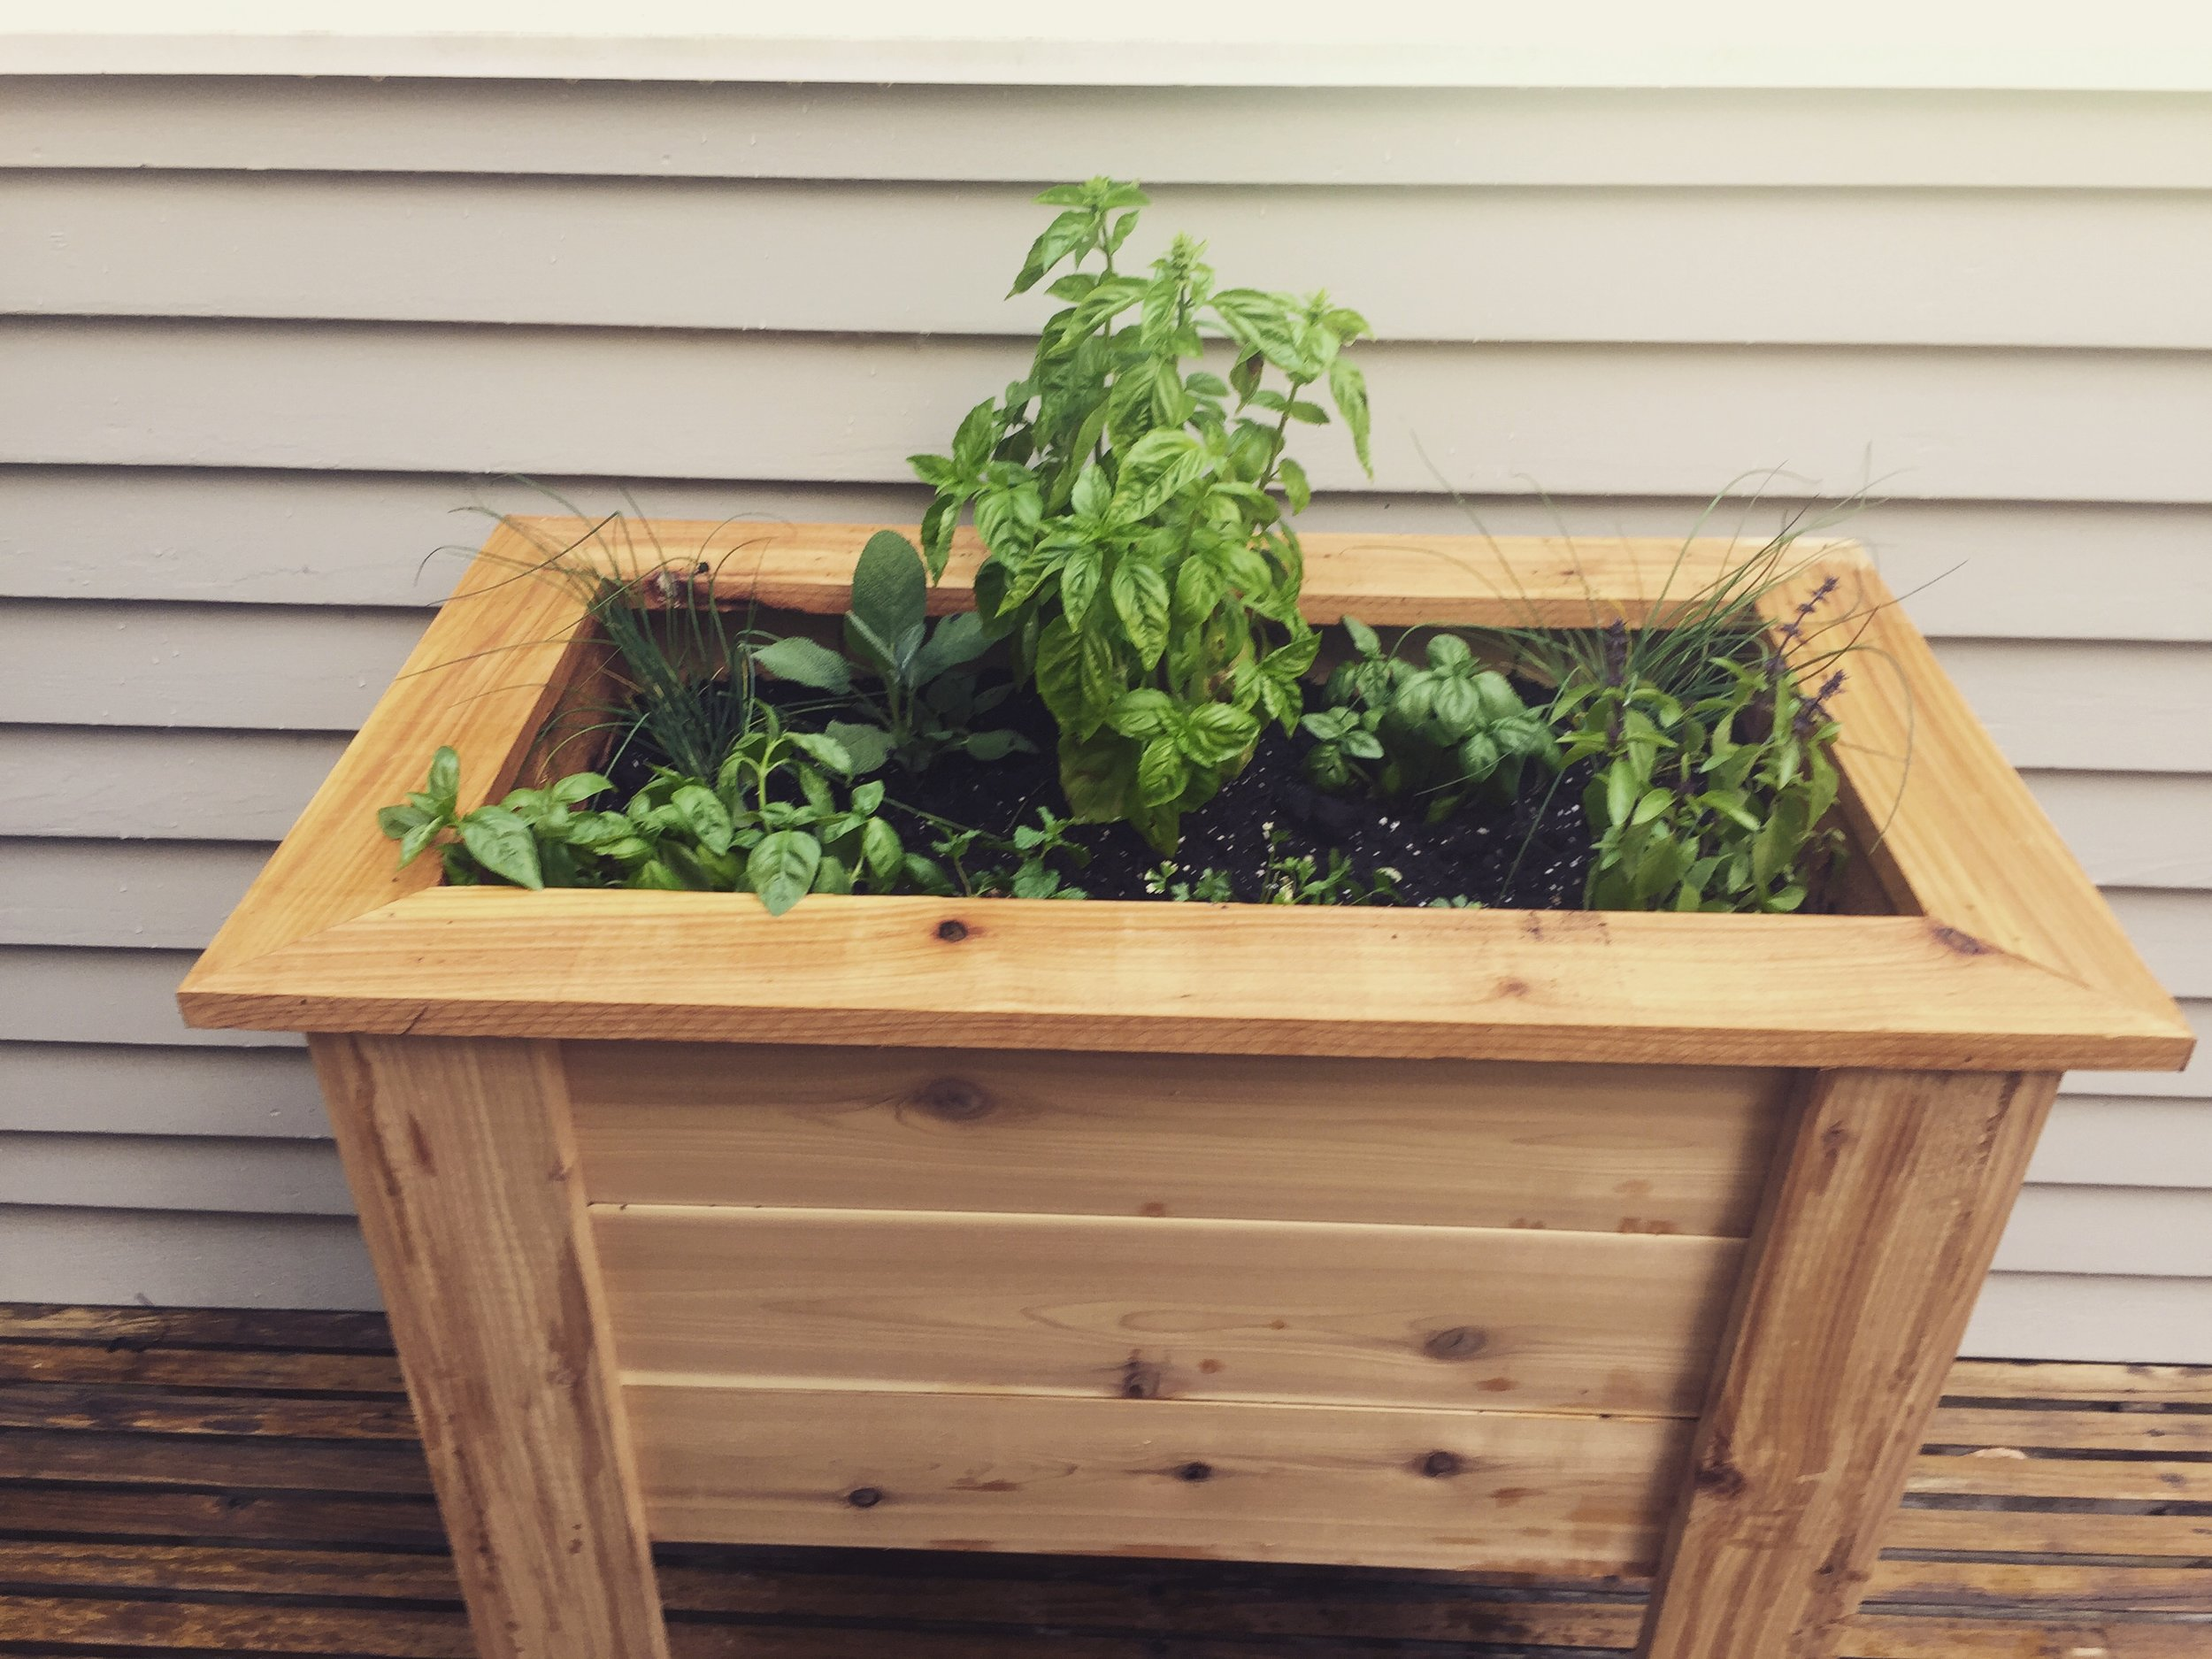 Rustic Cedar Planter - The planter is all Cedar with stainless screws and it comes natural or finished with oil or stain. The frame around the top can be with rough square edges (shown) or with a smooth round-over. Handmade in Madison, Connecticut.